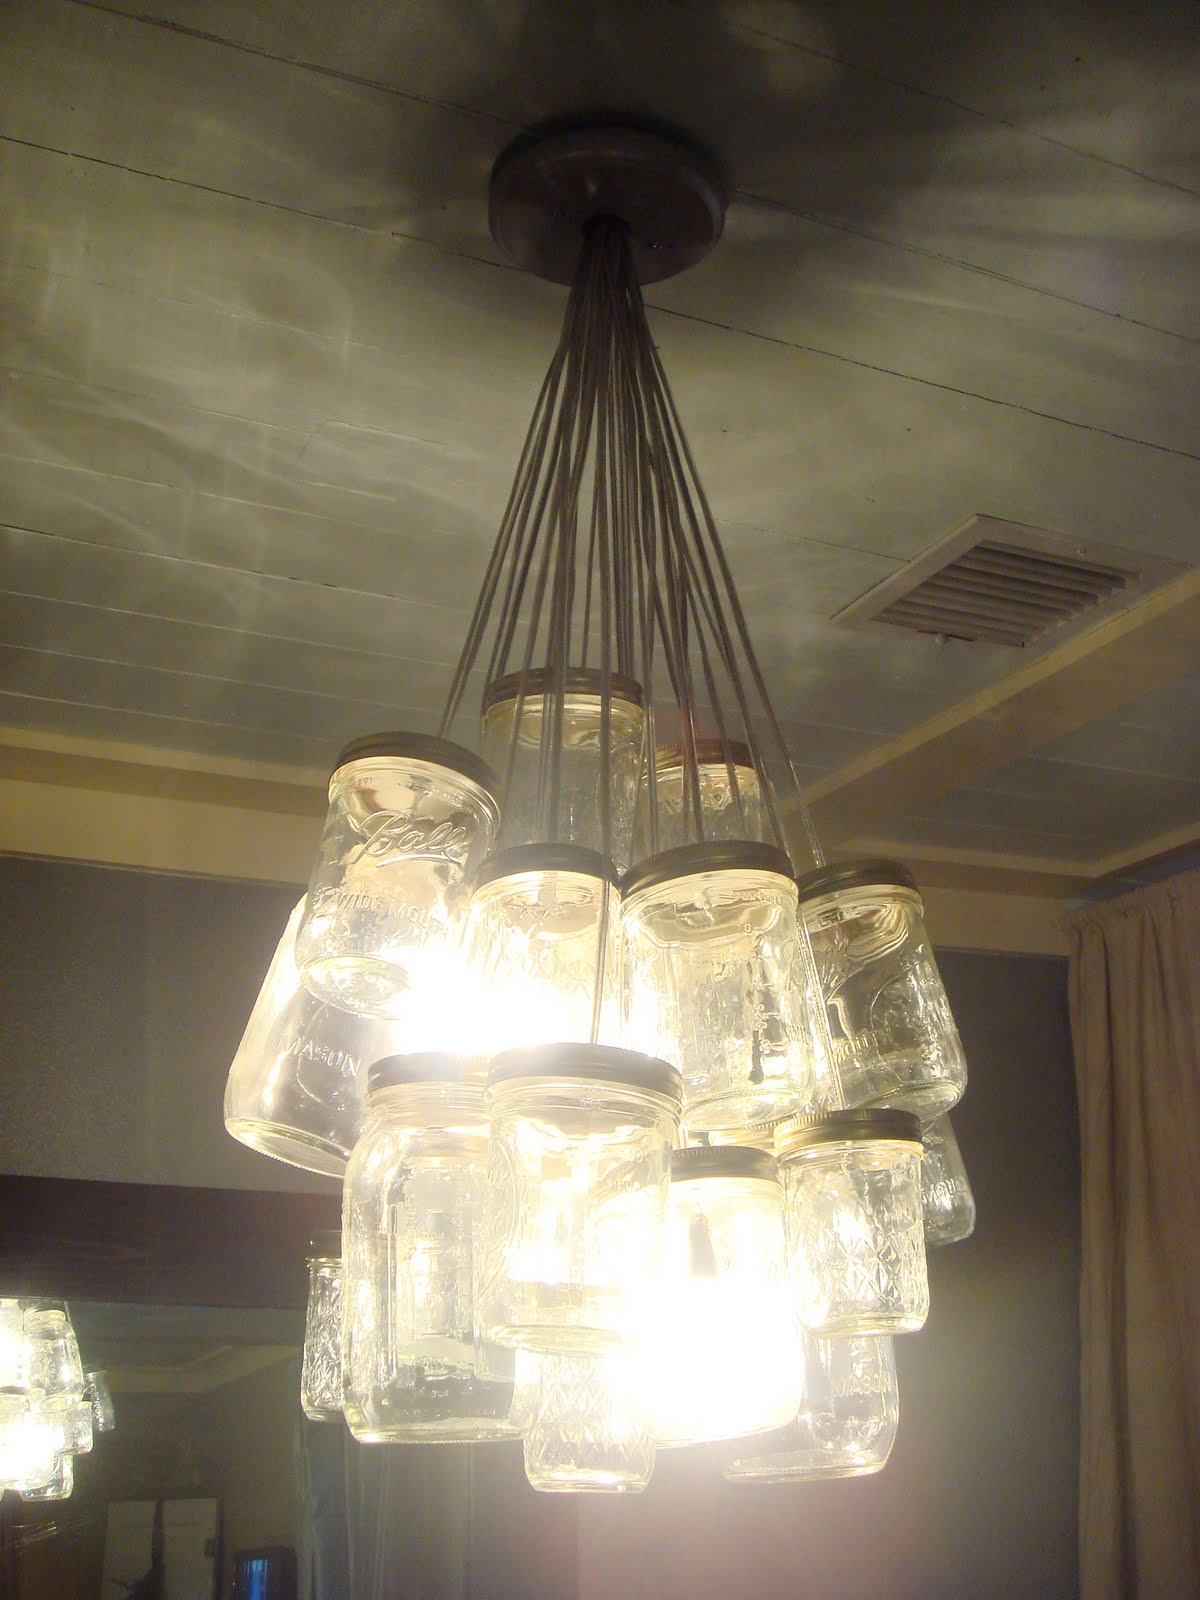 Hocuskocis diy mason jar chandelier part 1 from an etsy seller arubaitofo Image collections